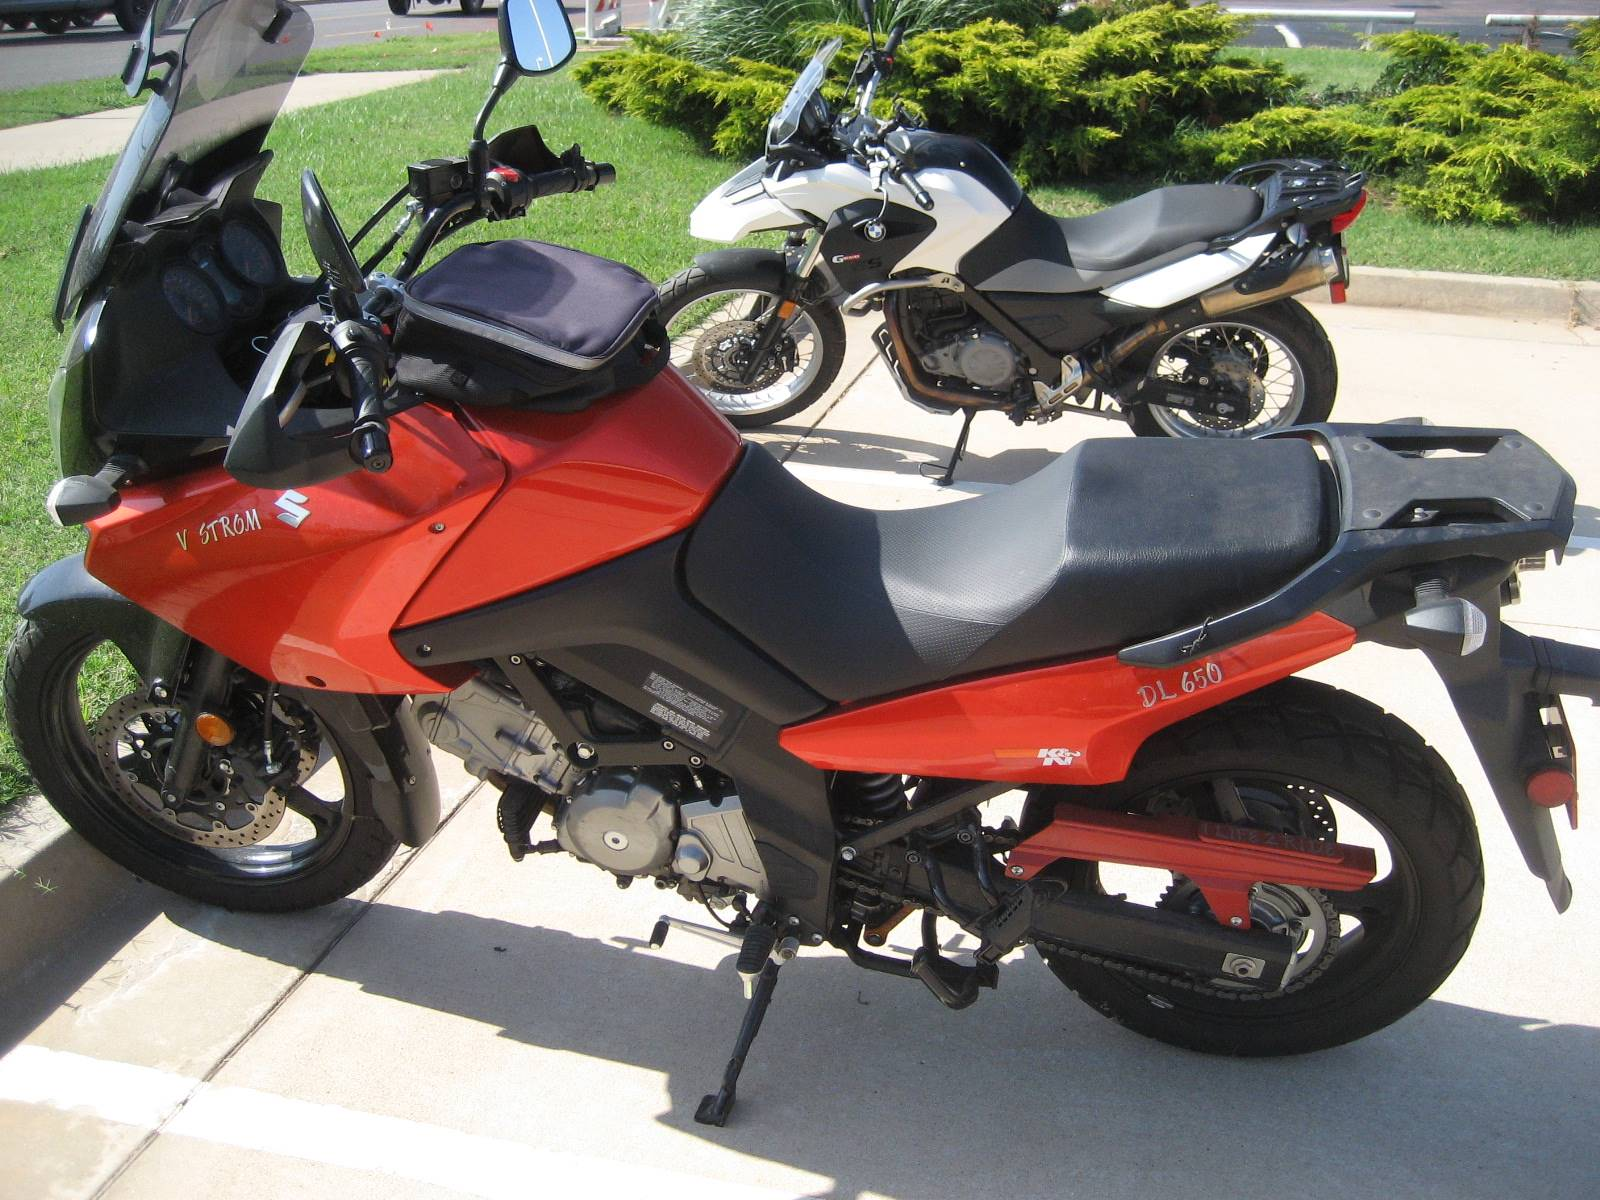 2009 Suzuki V-Strom 650 in Shawnee, Oklahoma - Photo 3